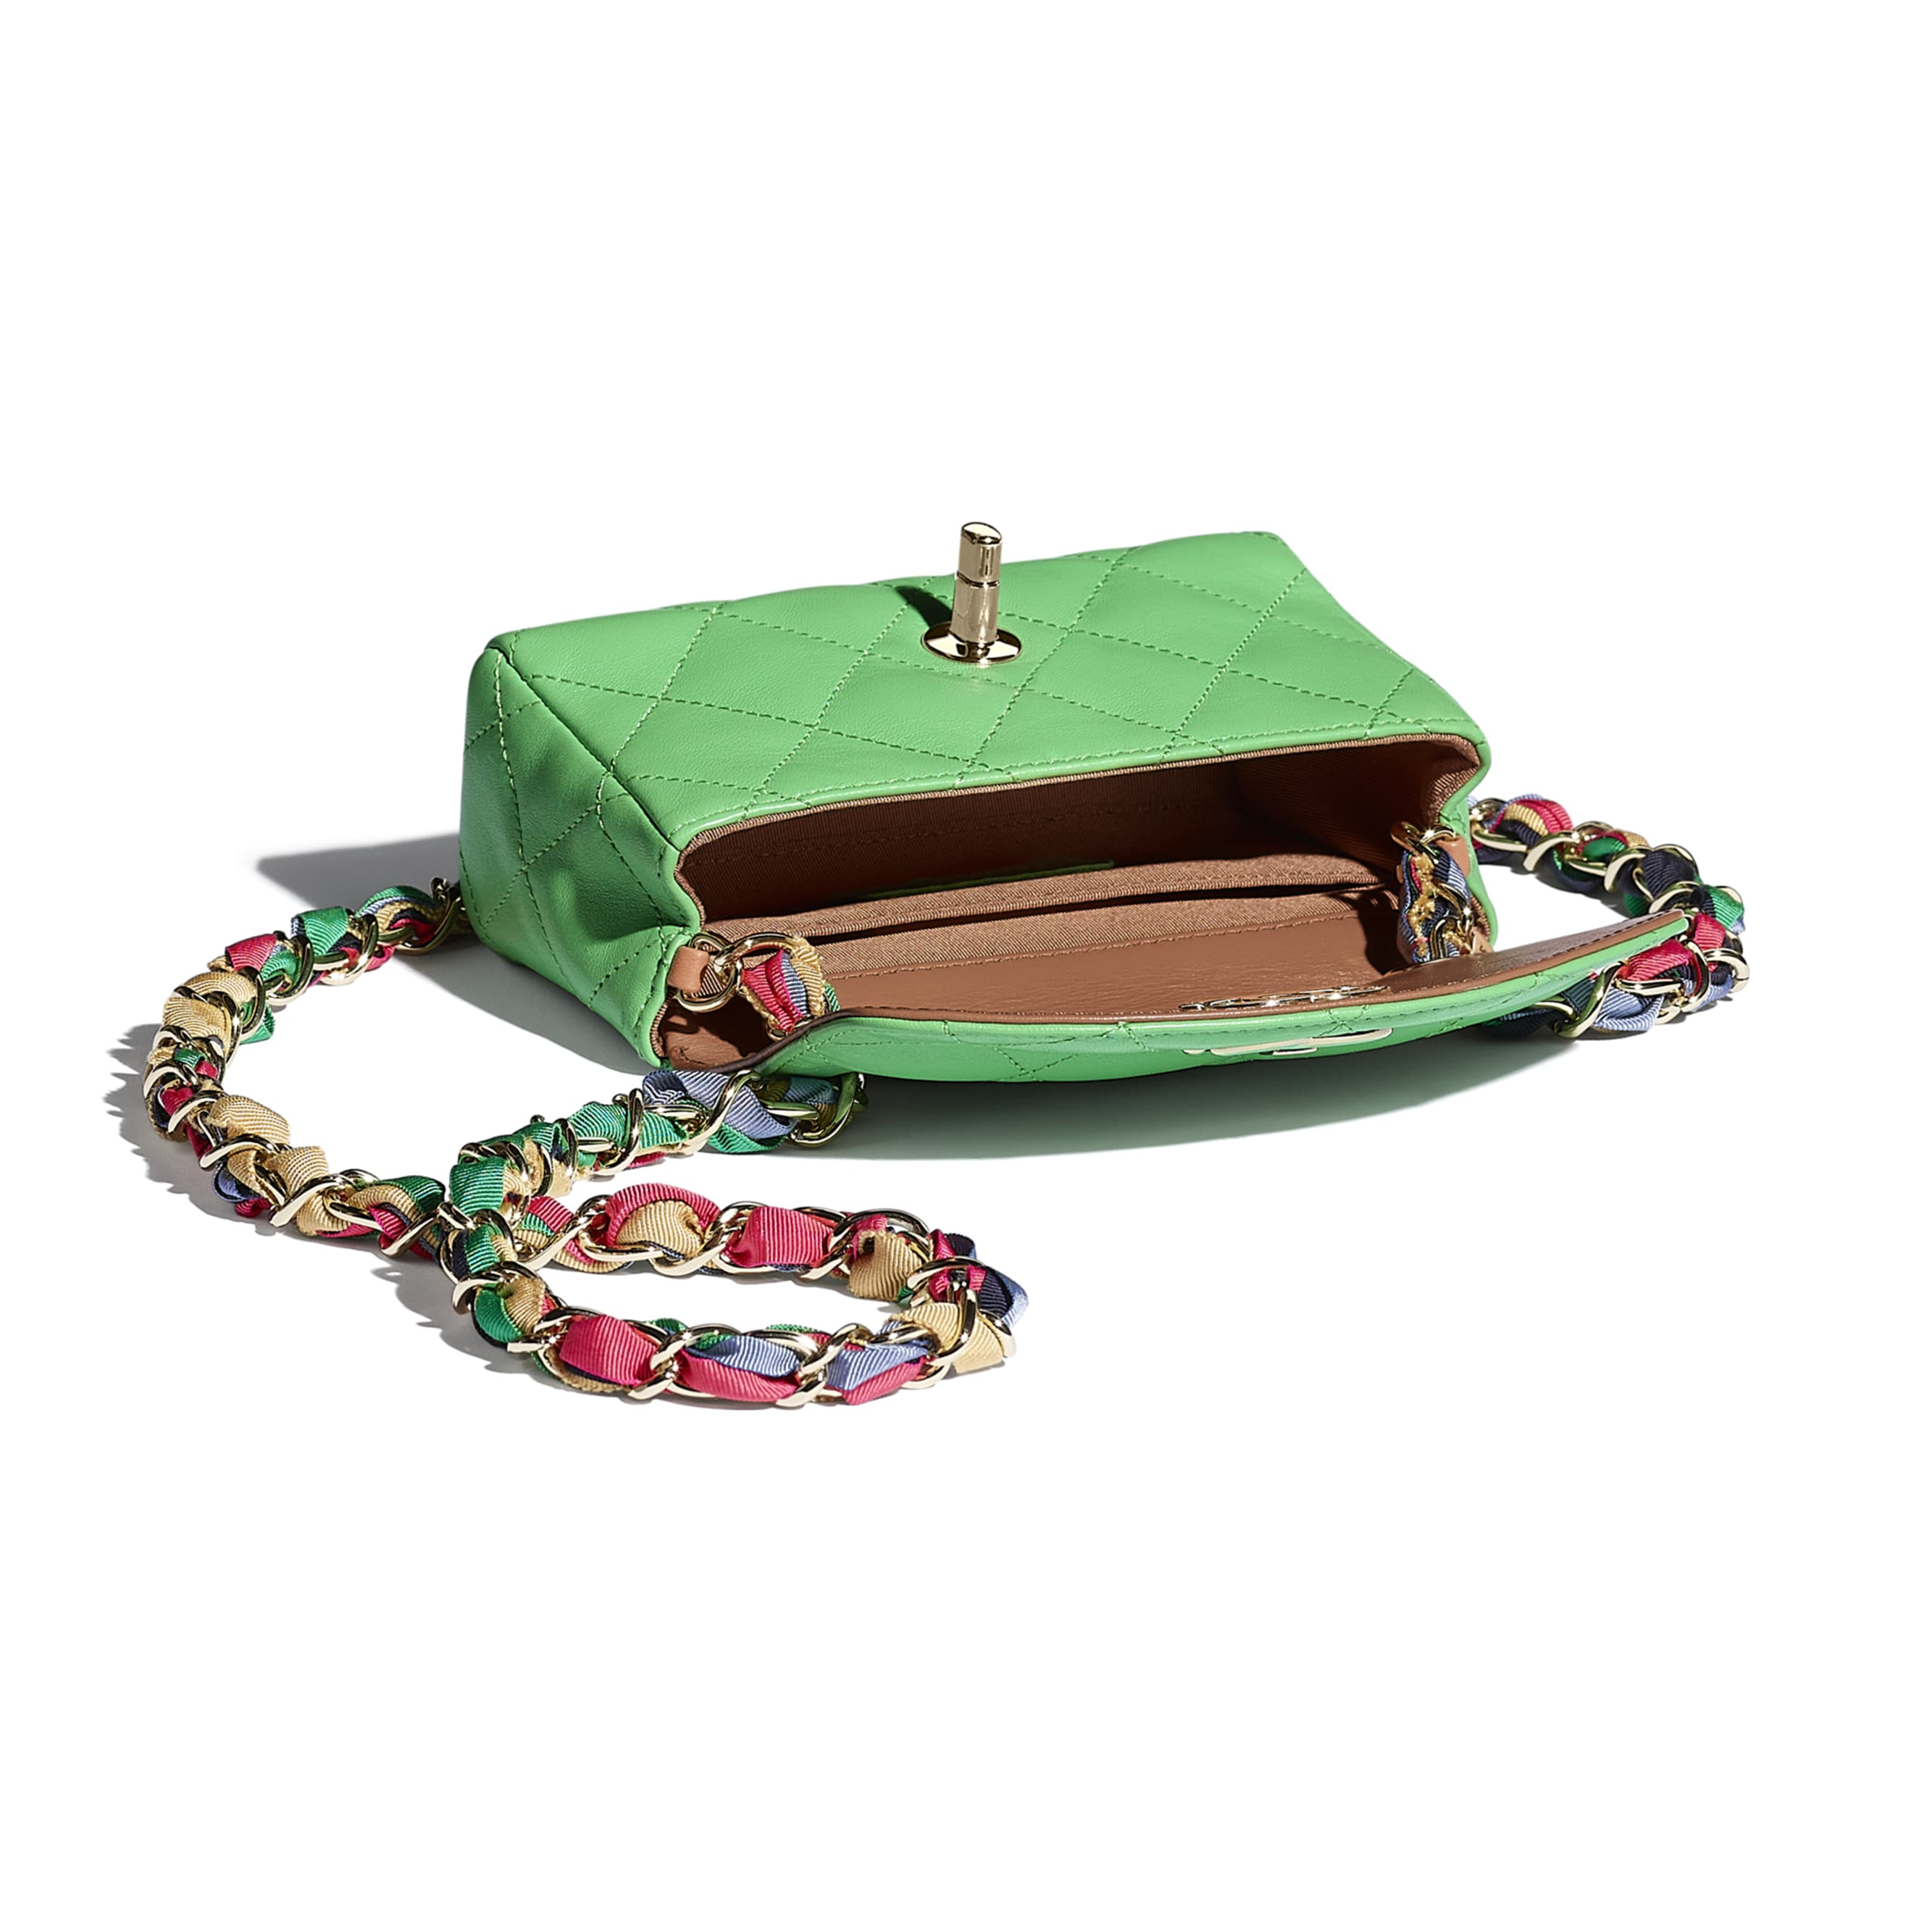 Small Flap Bag - Green - Lambskin, Mixed Fibers & Gold-Tone Metal - CHANEL - Other view - see standard sized version